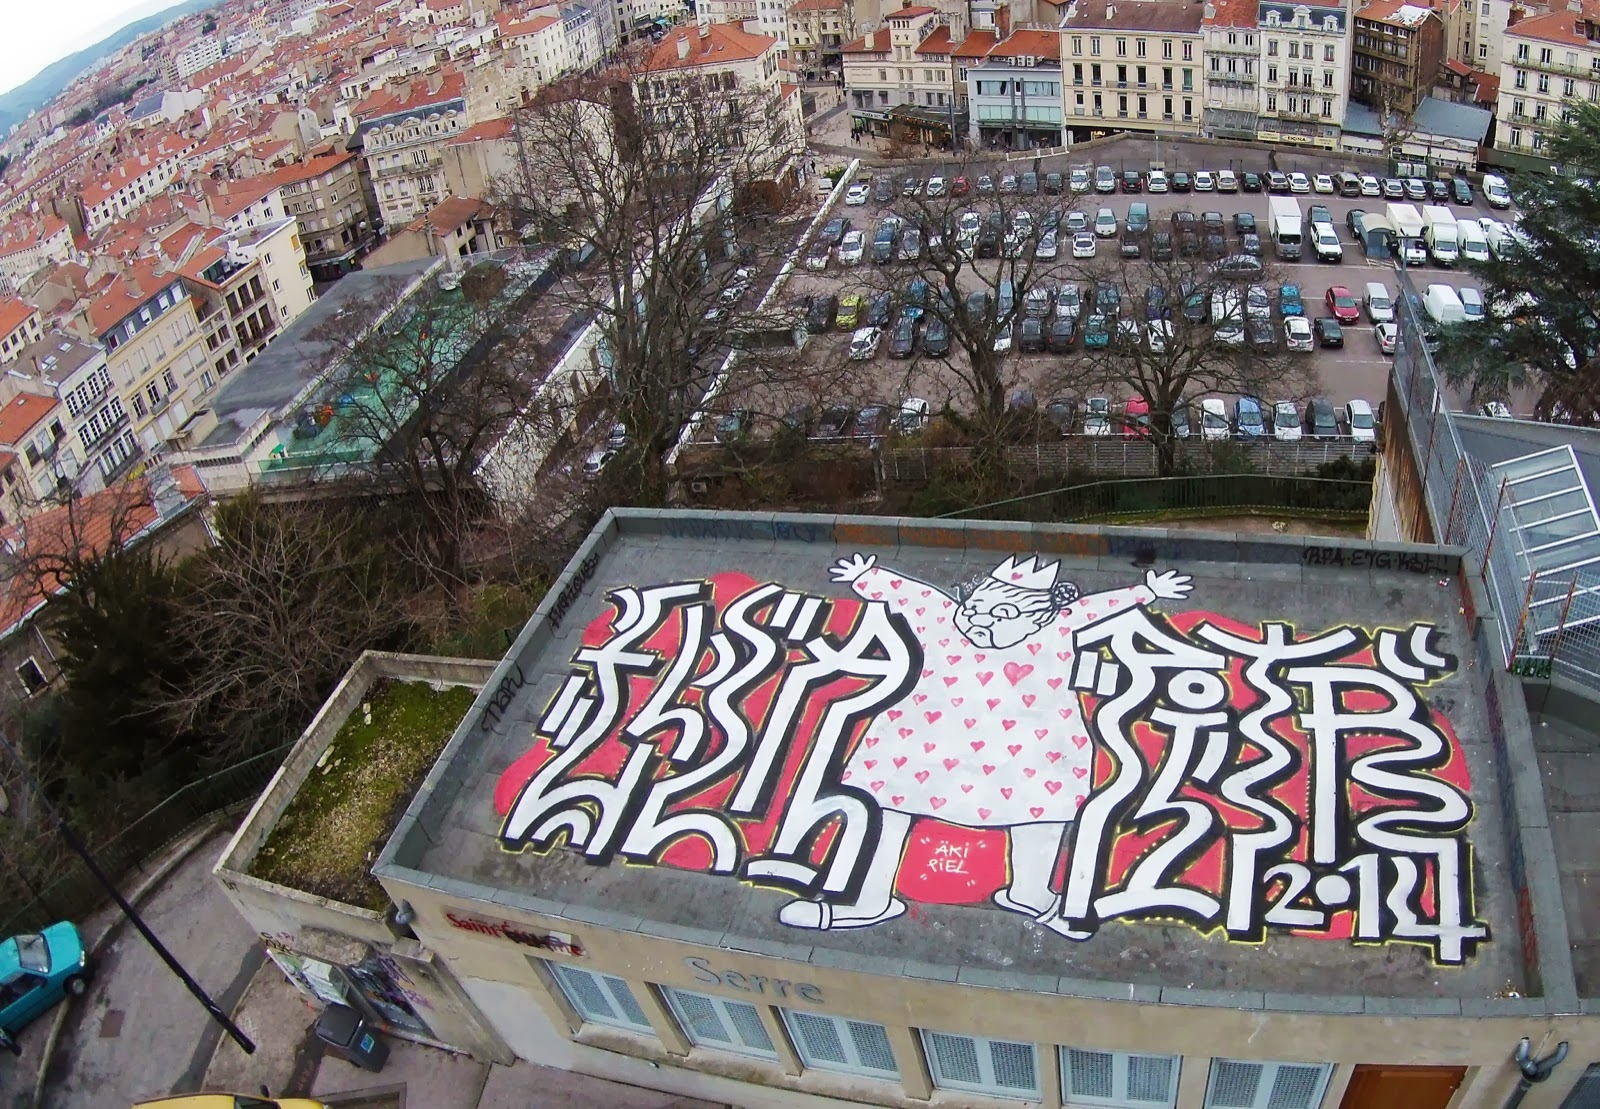 Ella & Pitr New Rooftop Piece - Saint-Etienne, France 1